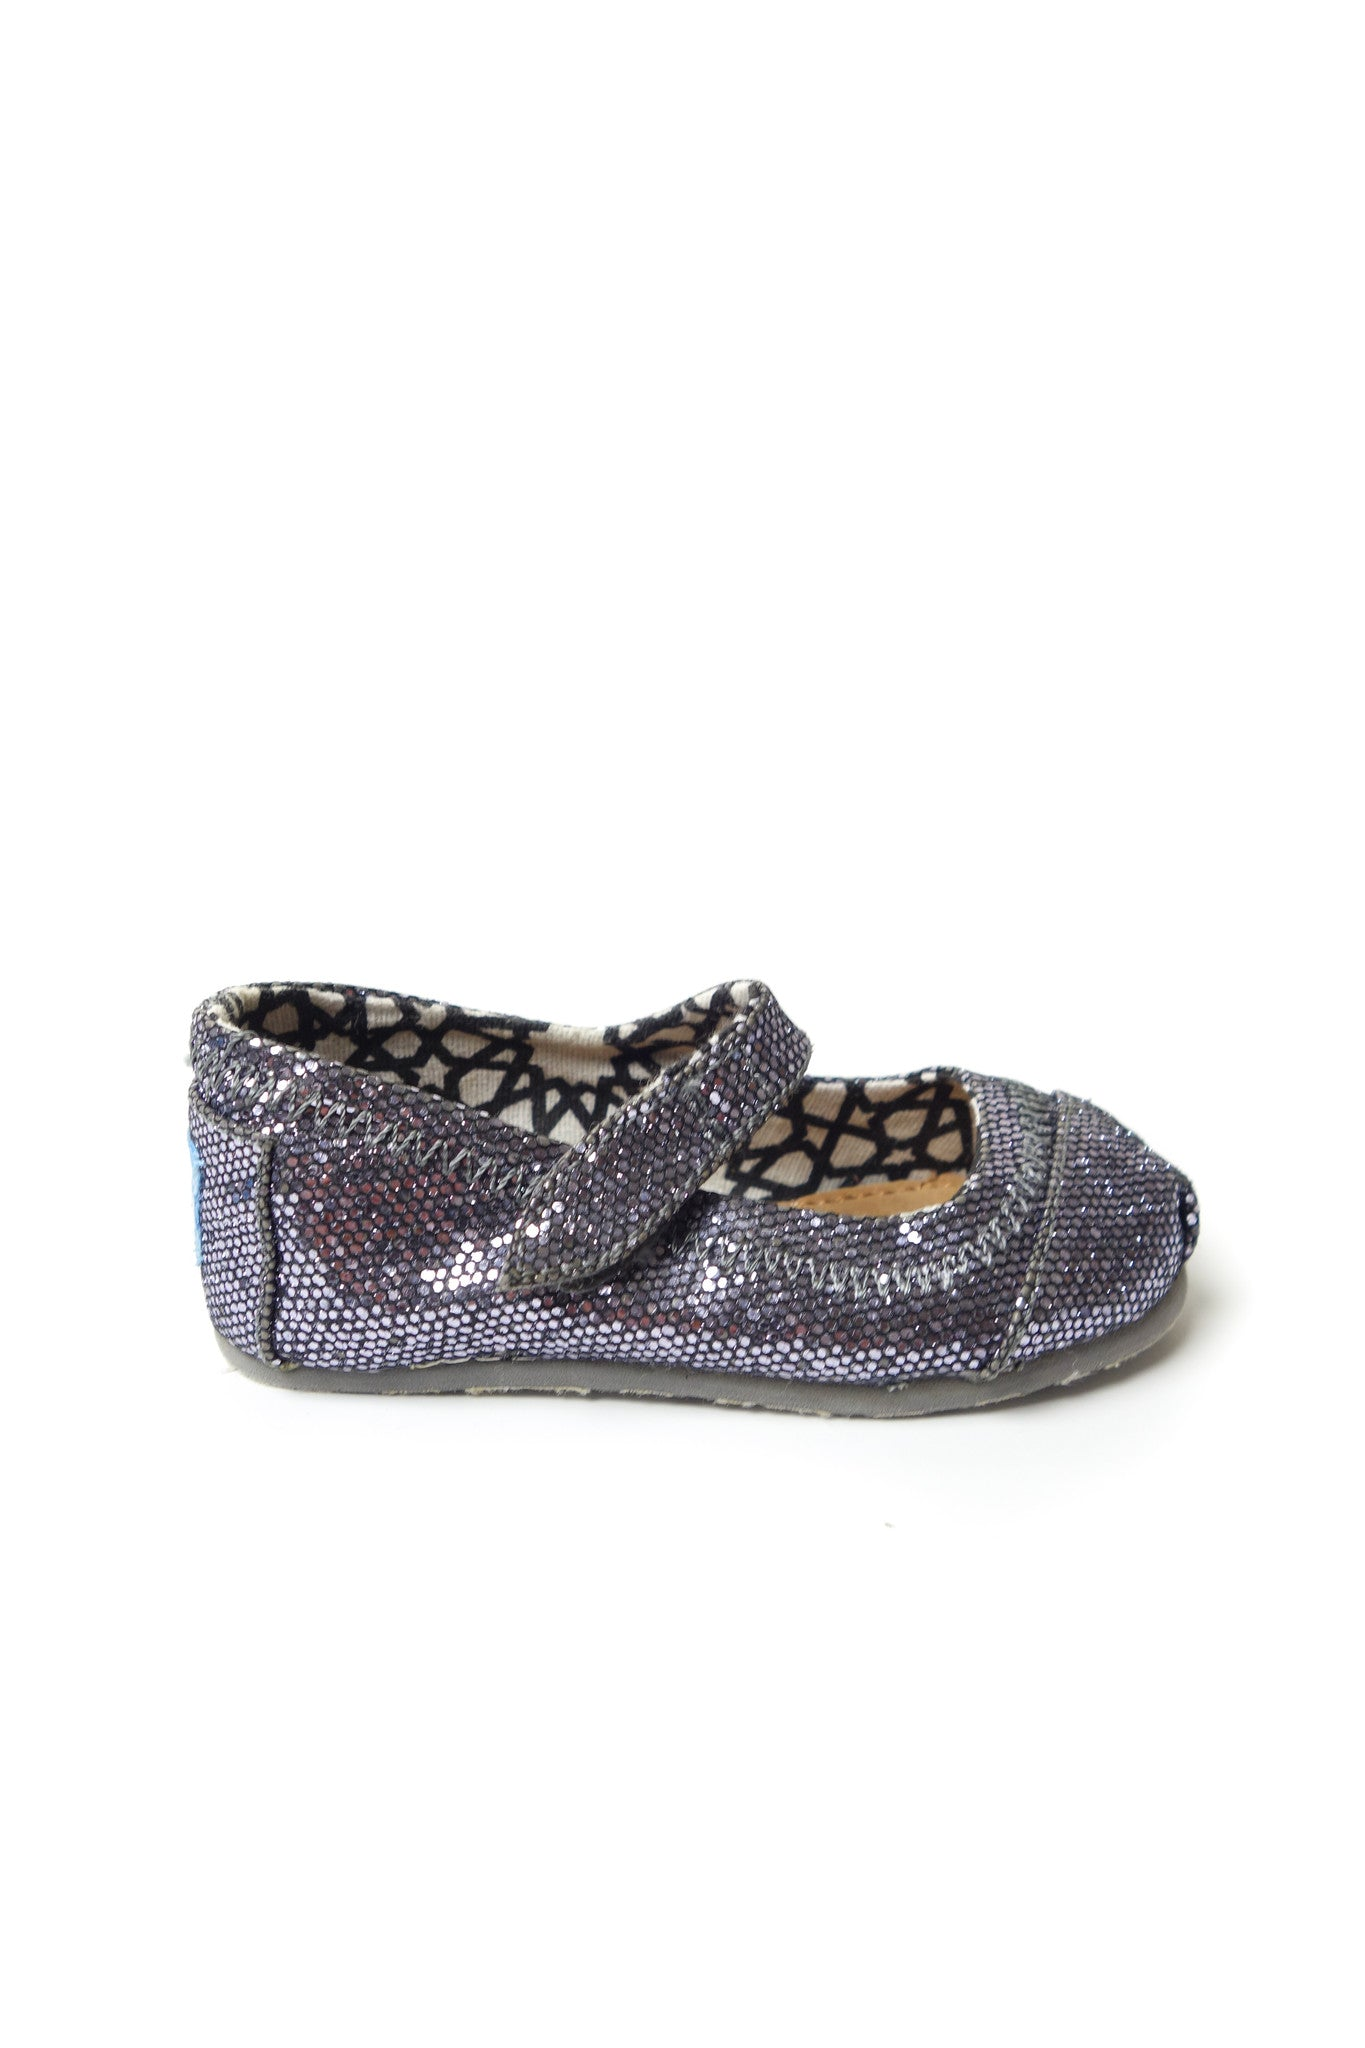 10001632 Toms Baby~Shoes 12-18M (US 5) at Retykle